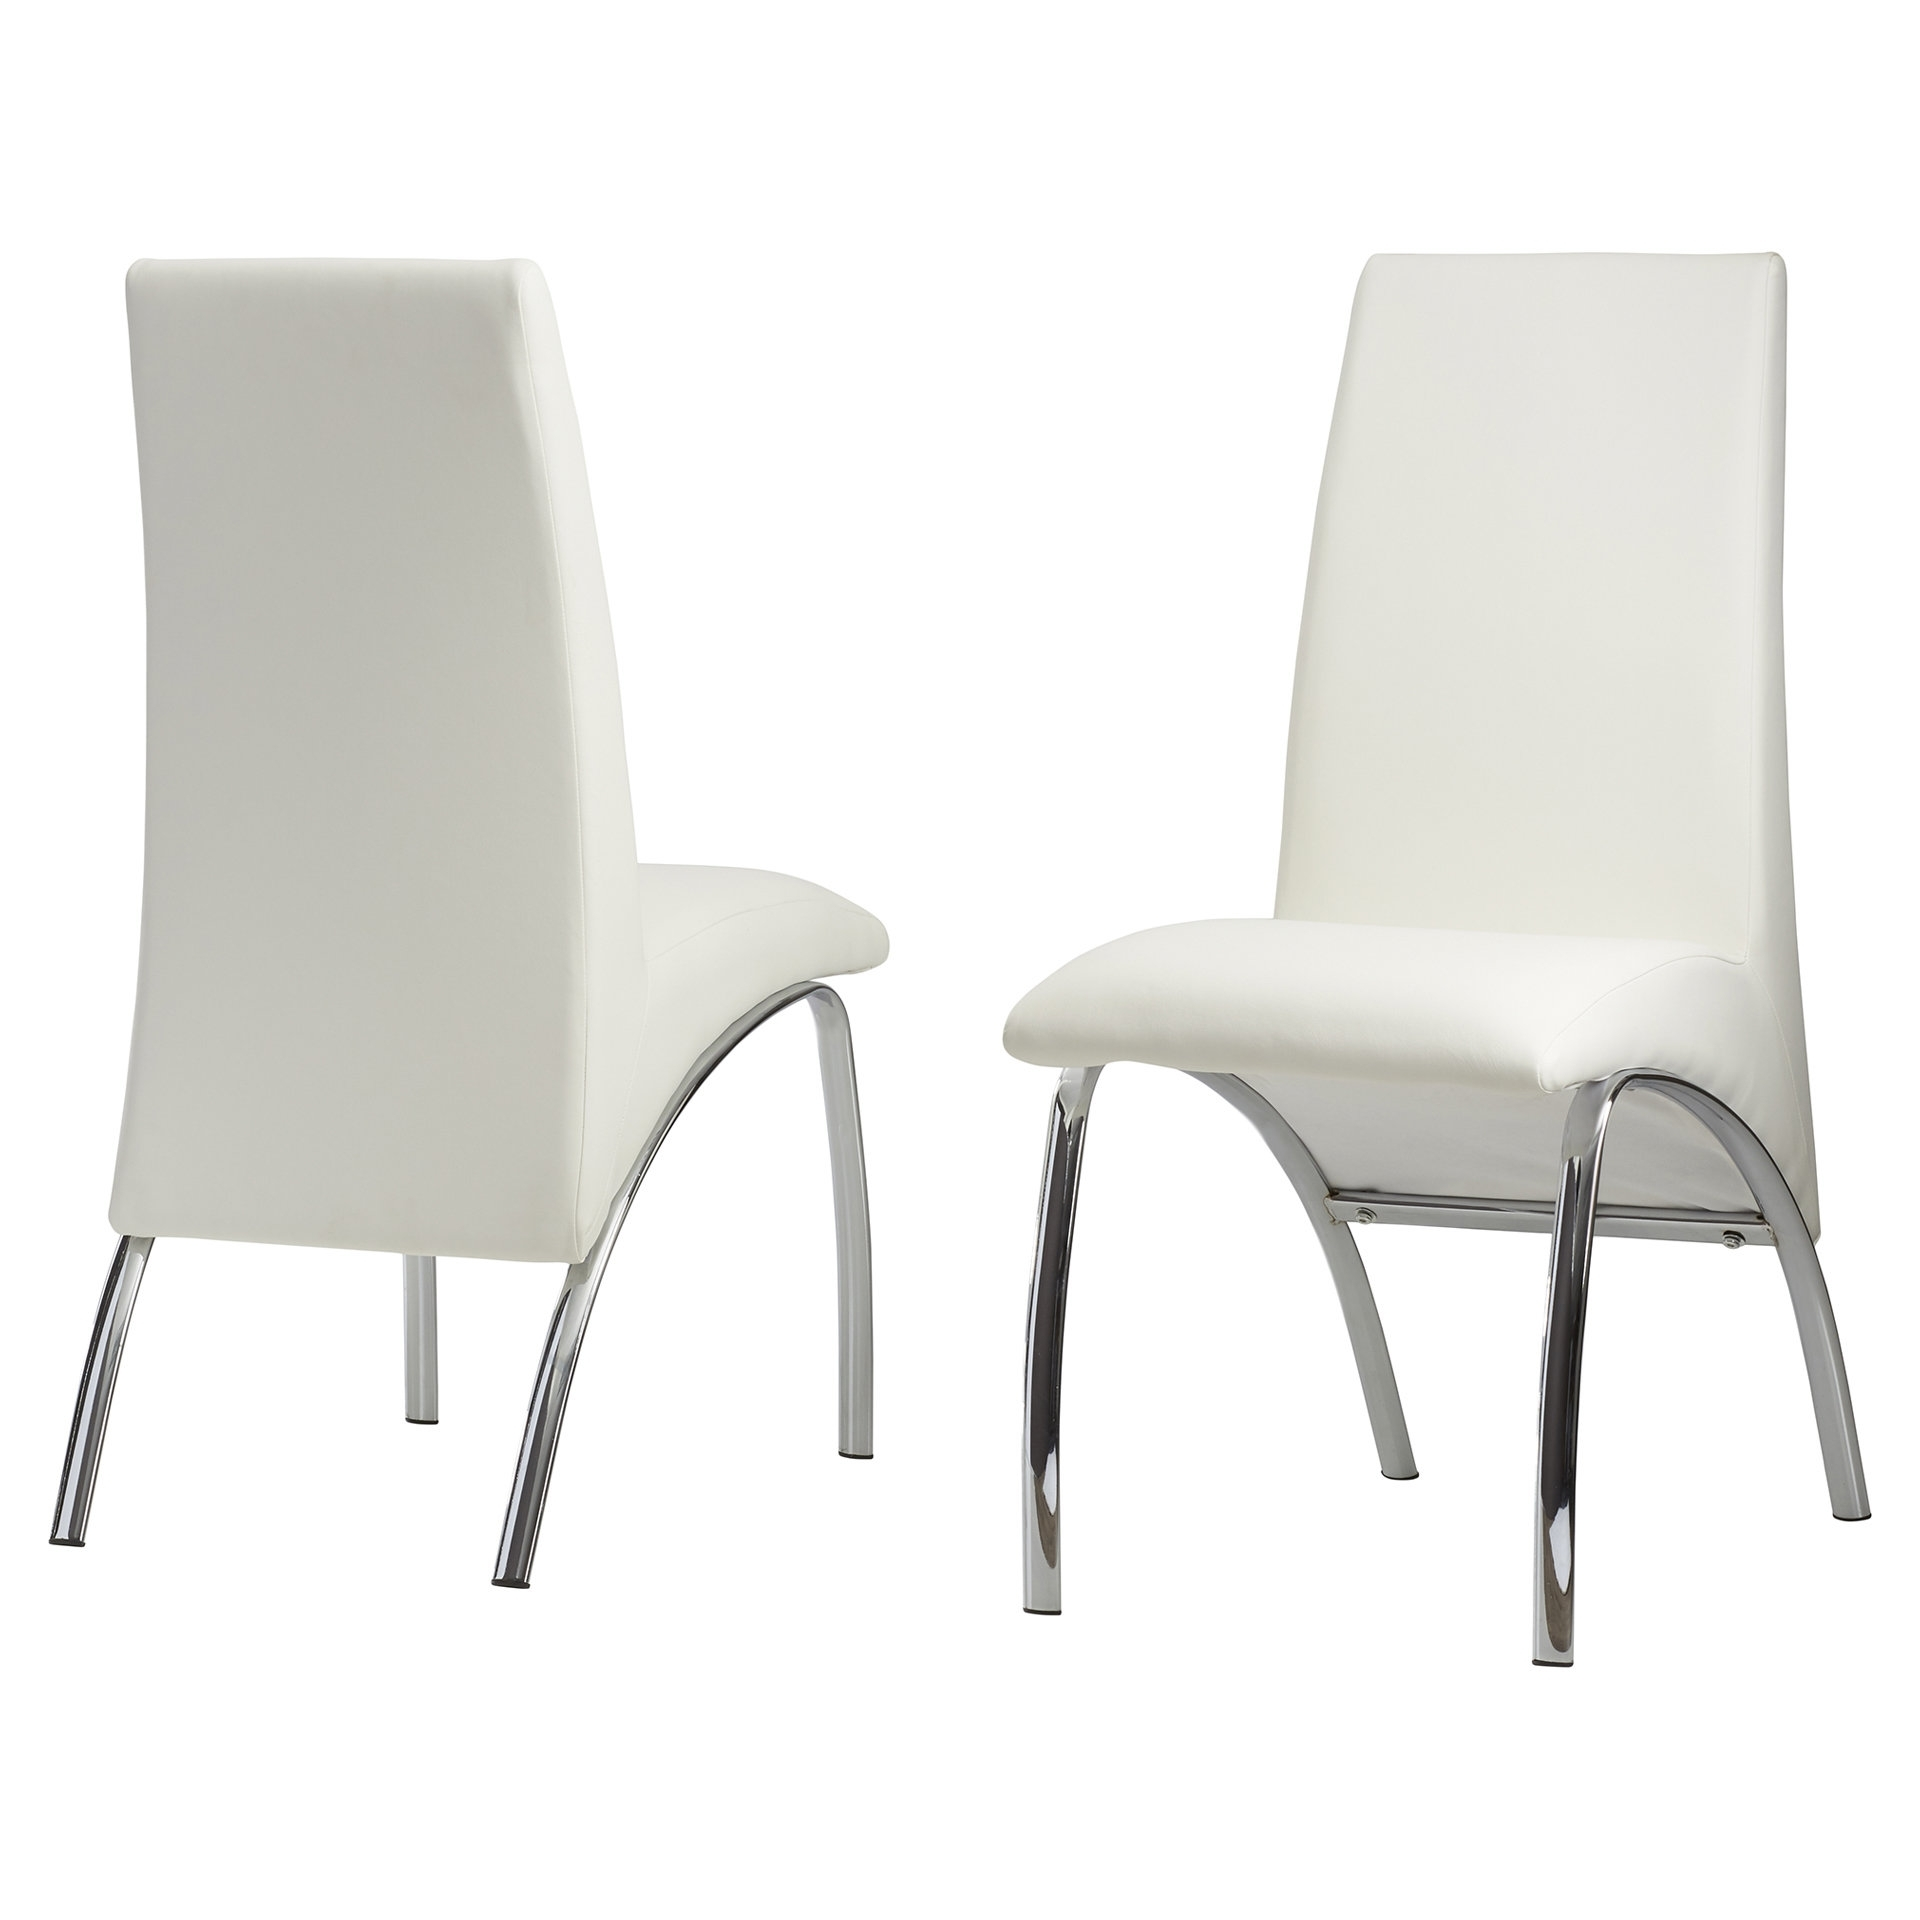 Logan Side Chairs Within Latest Wade Logan Lidia Side Chair & Reviews (View 13 of 20)